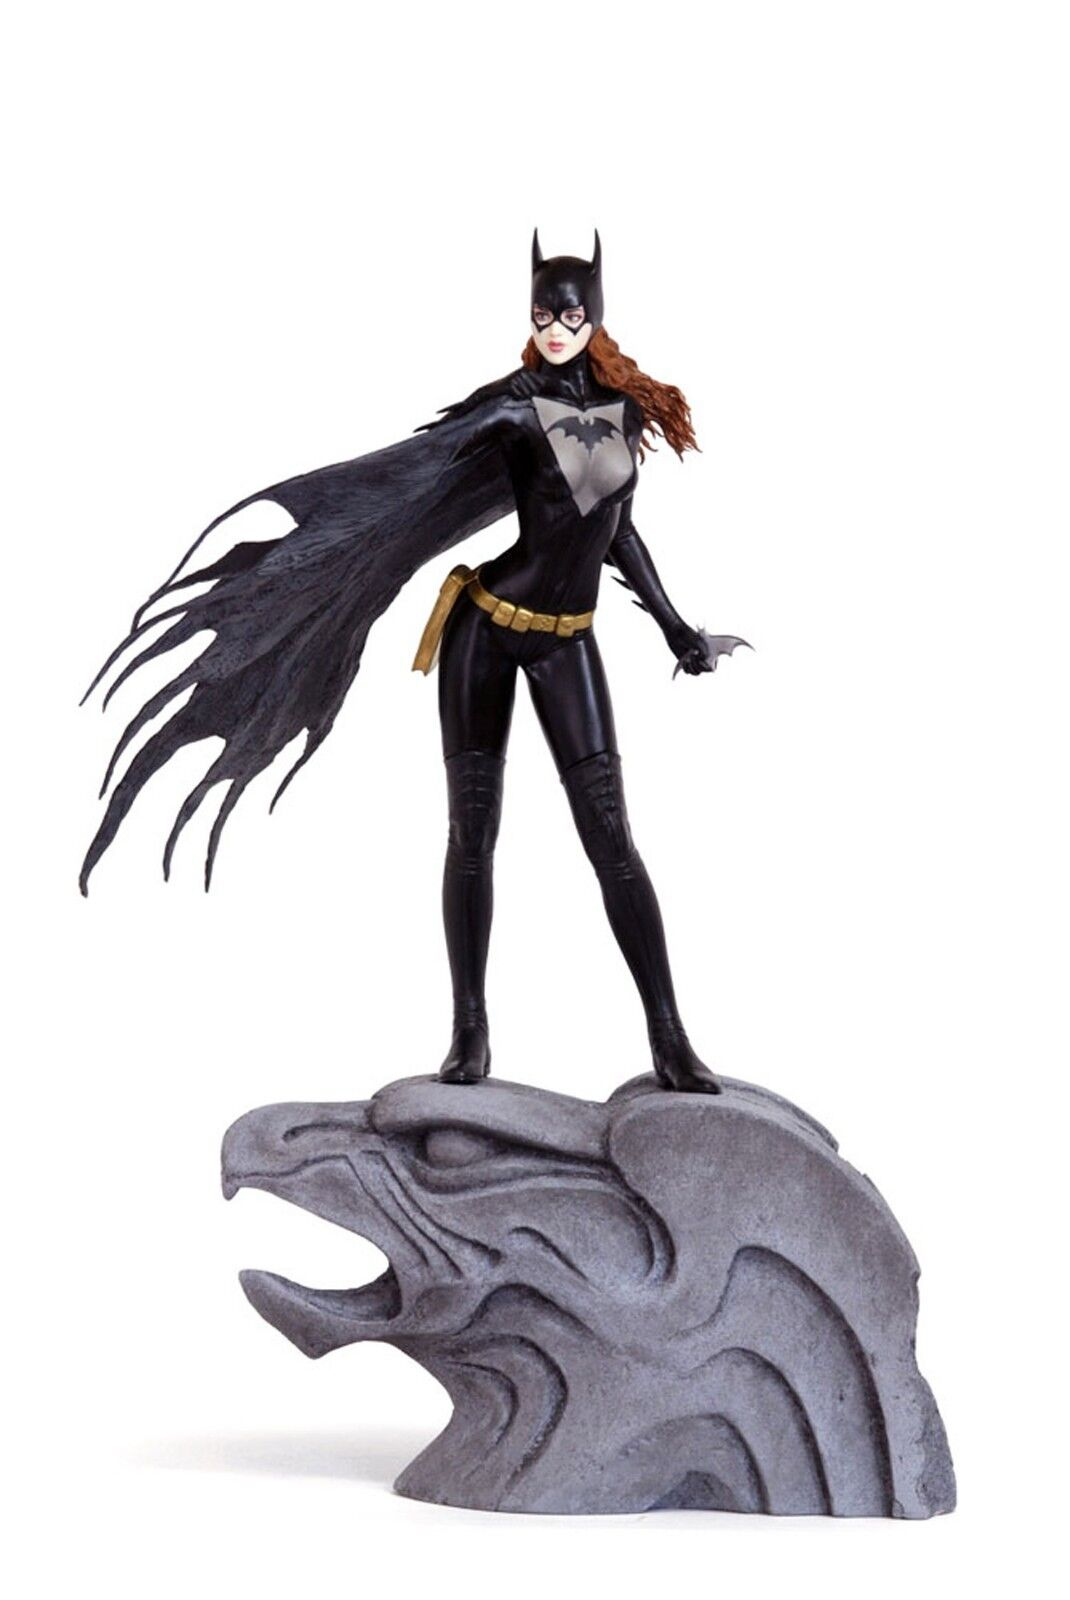 Batgirl Luis Royo Versio Fantasy Art Batgal 1 6 Unpainted Figure Model Resin Kit